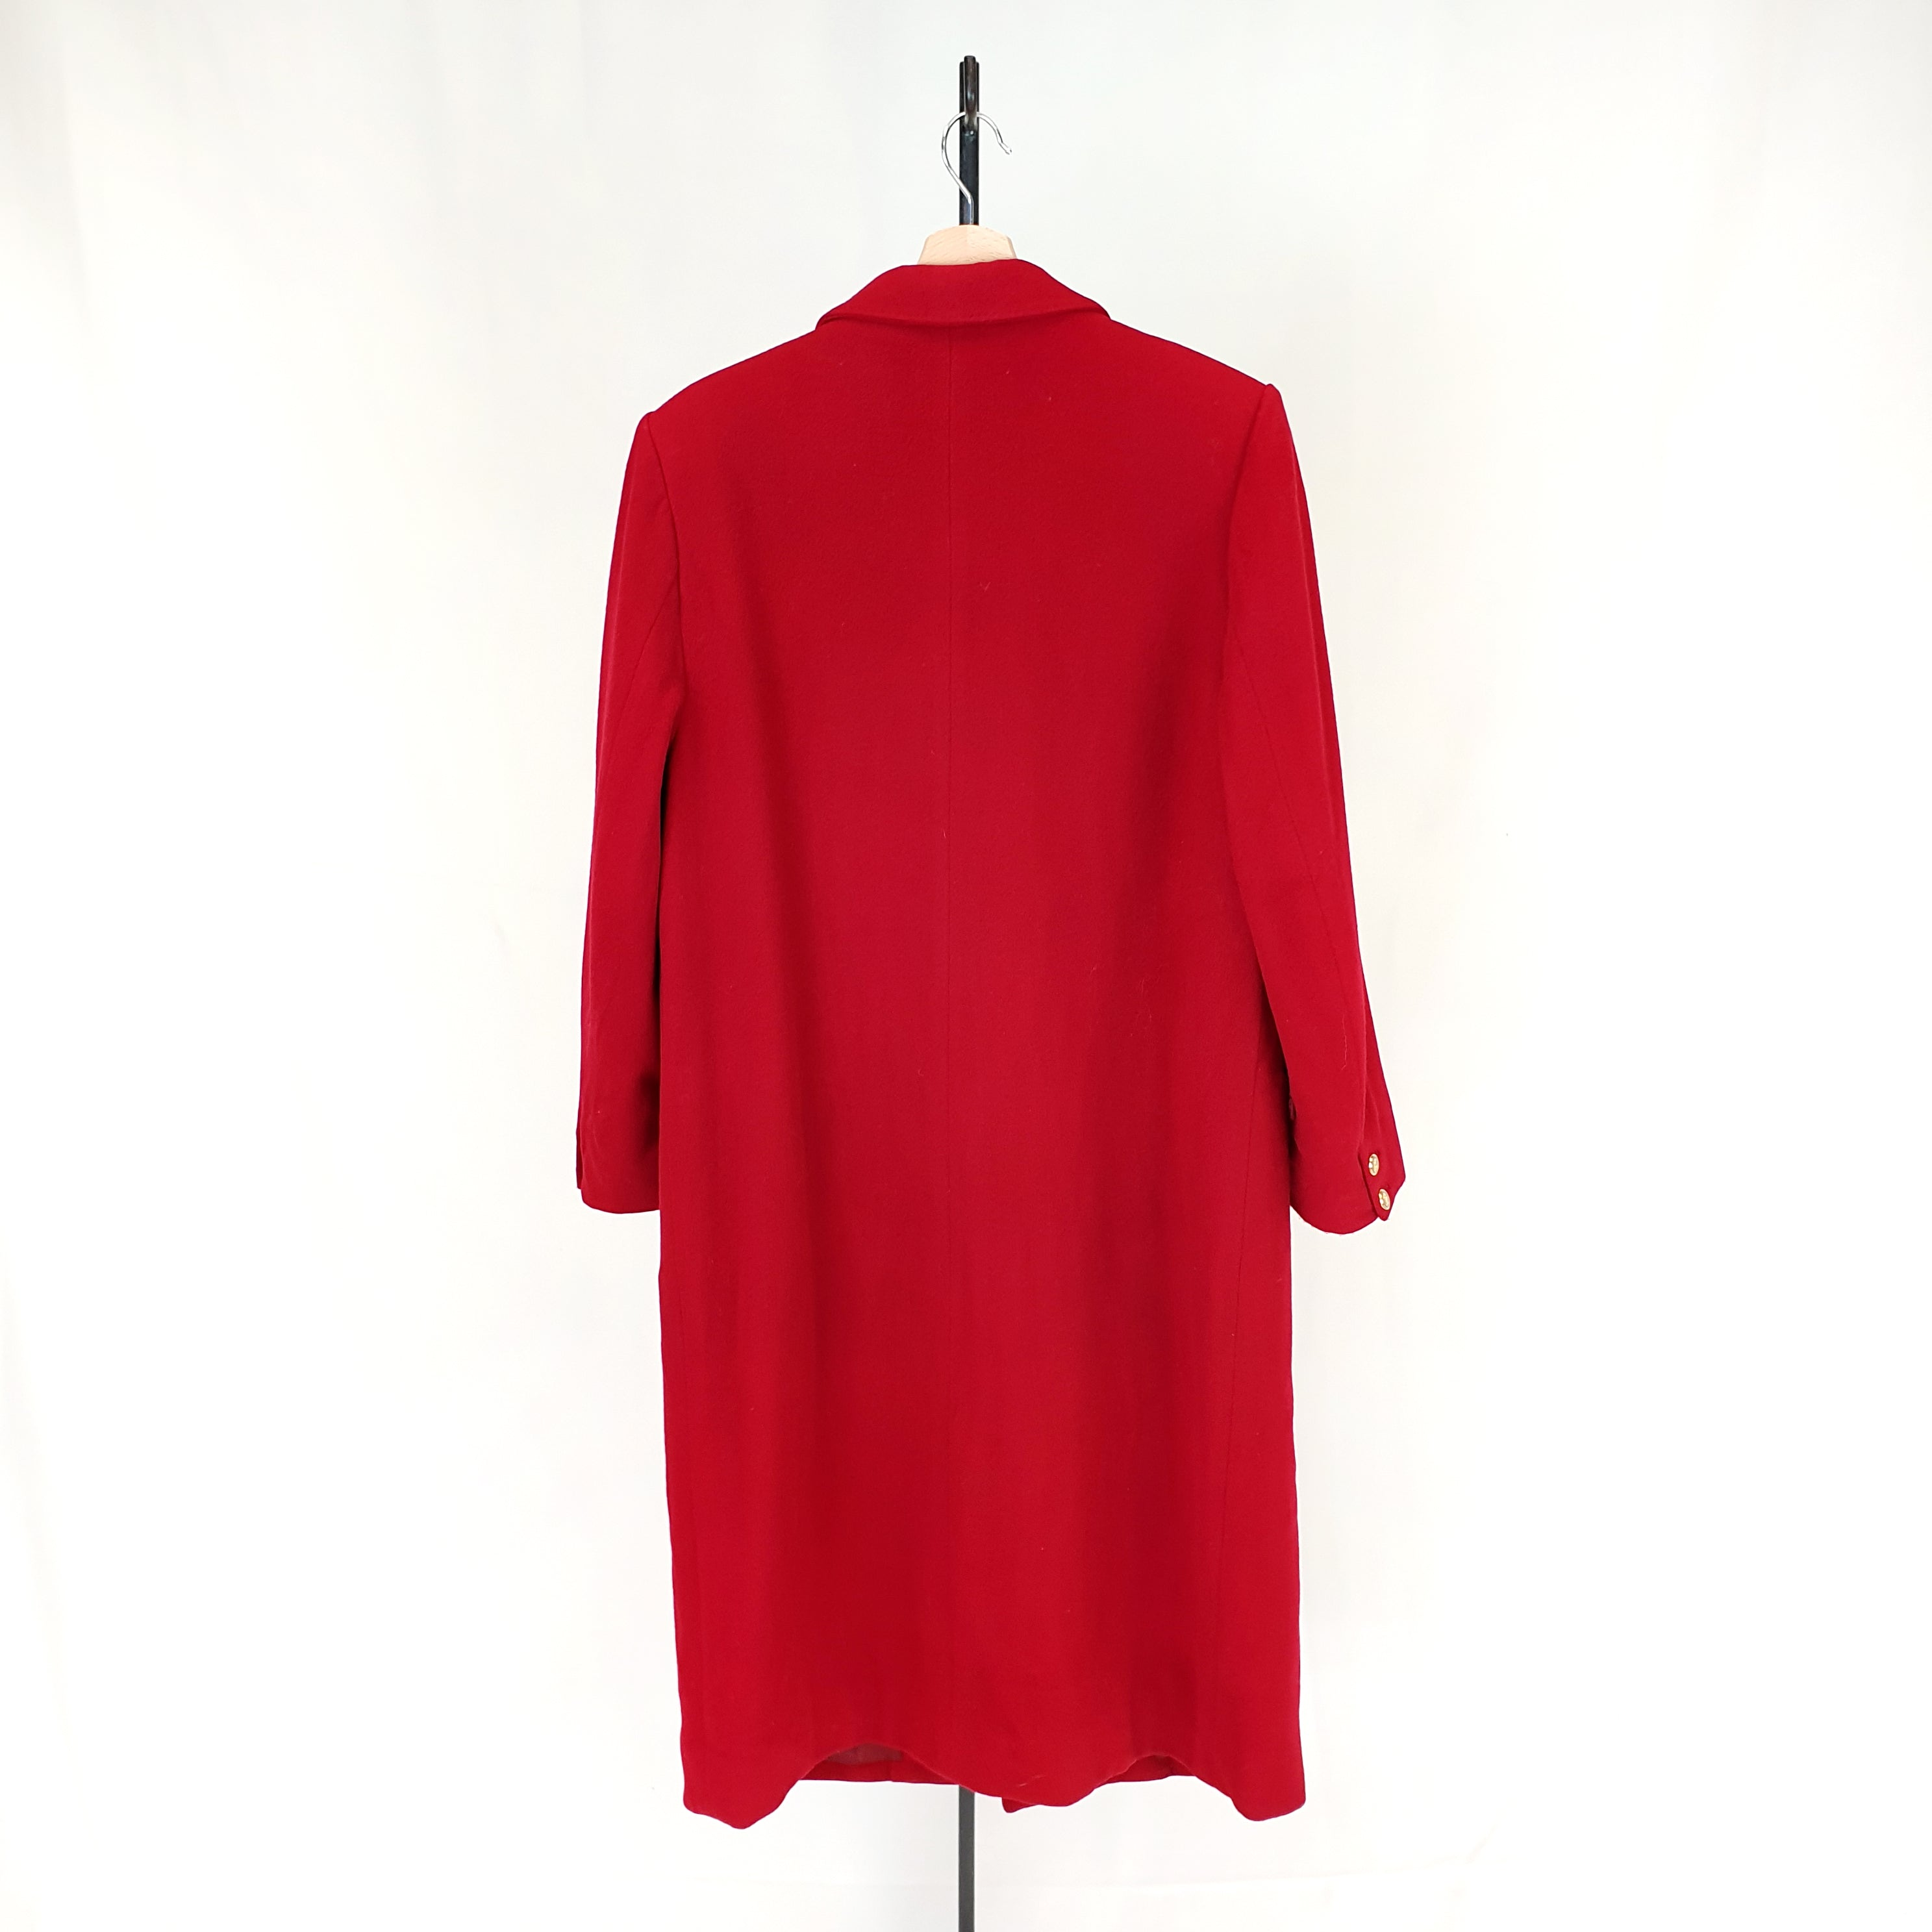 Burberry Red Wool Coat